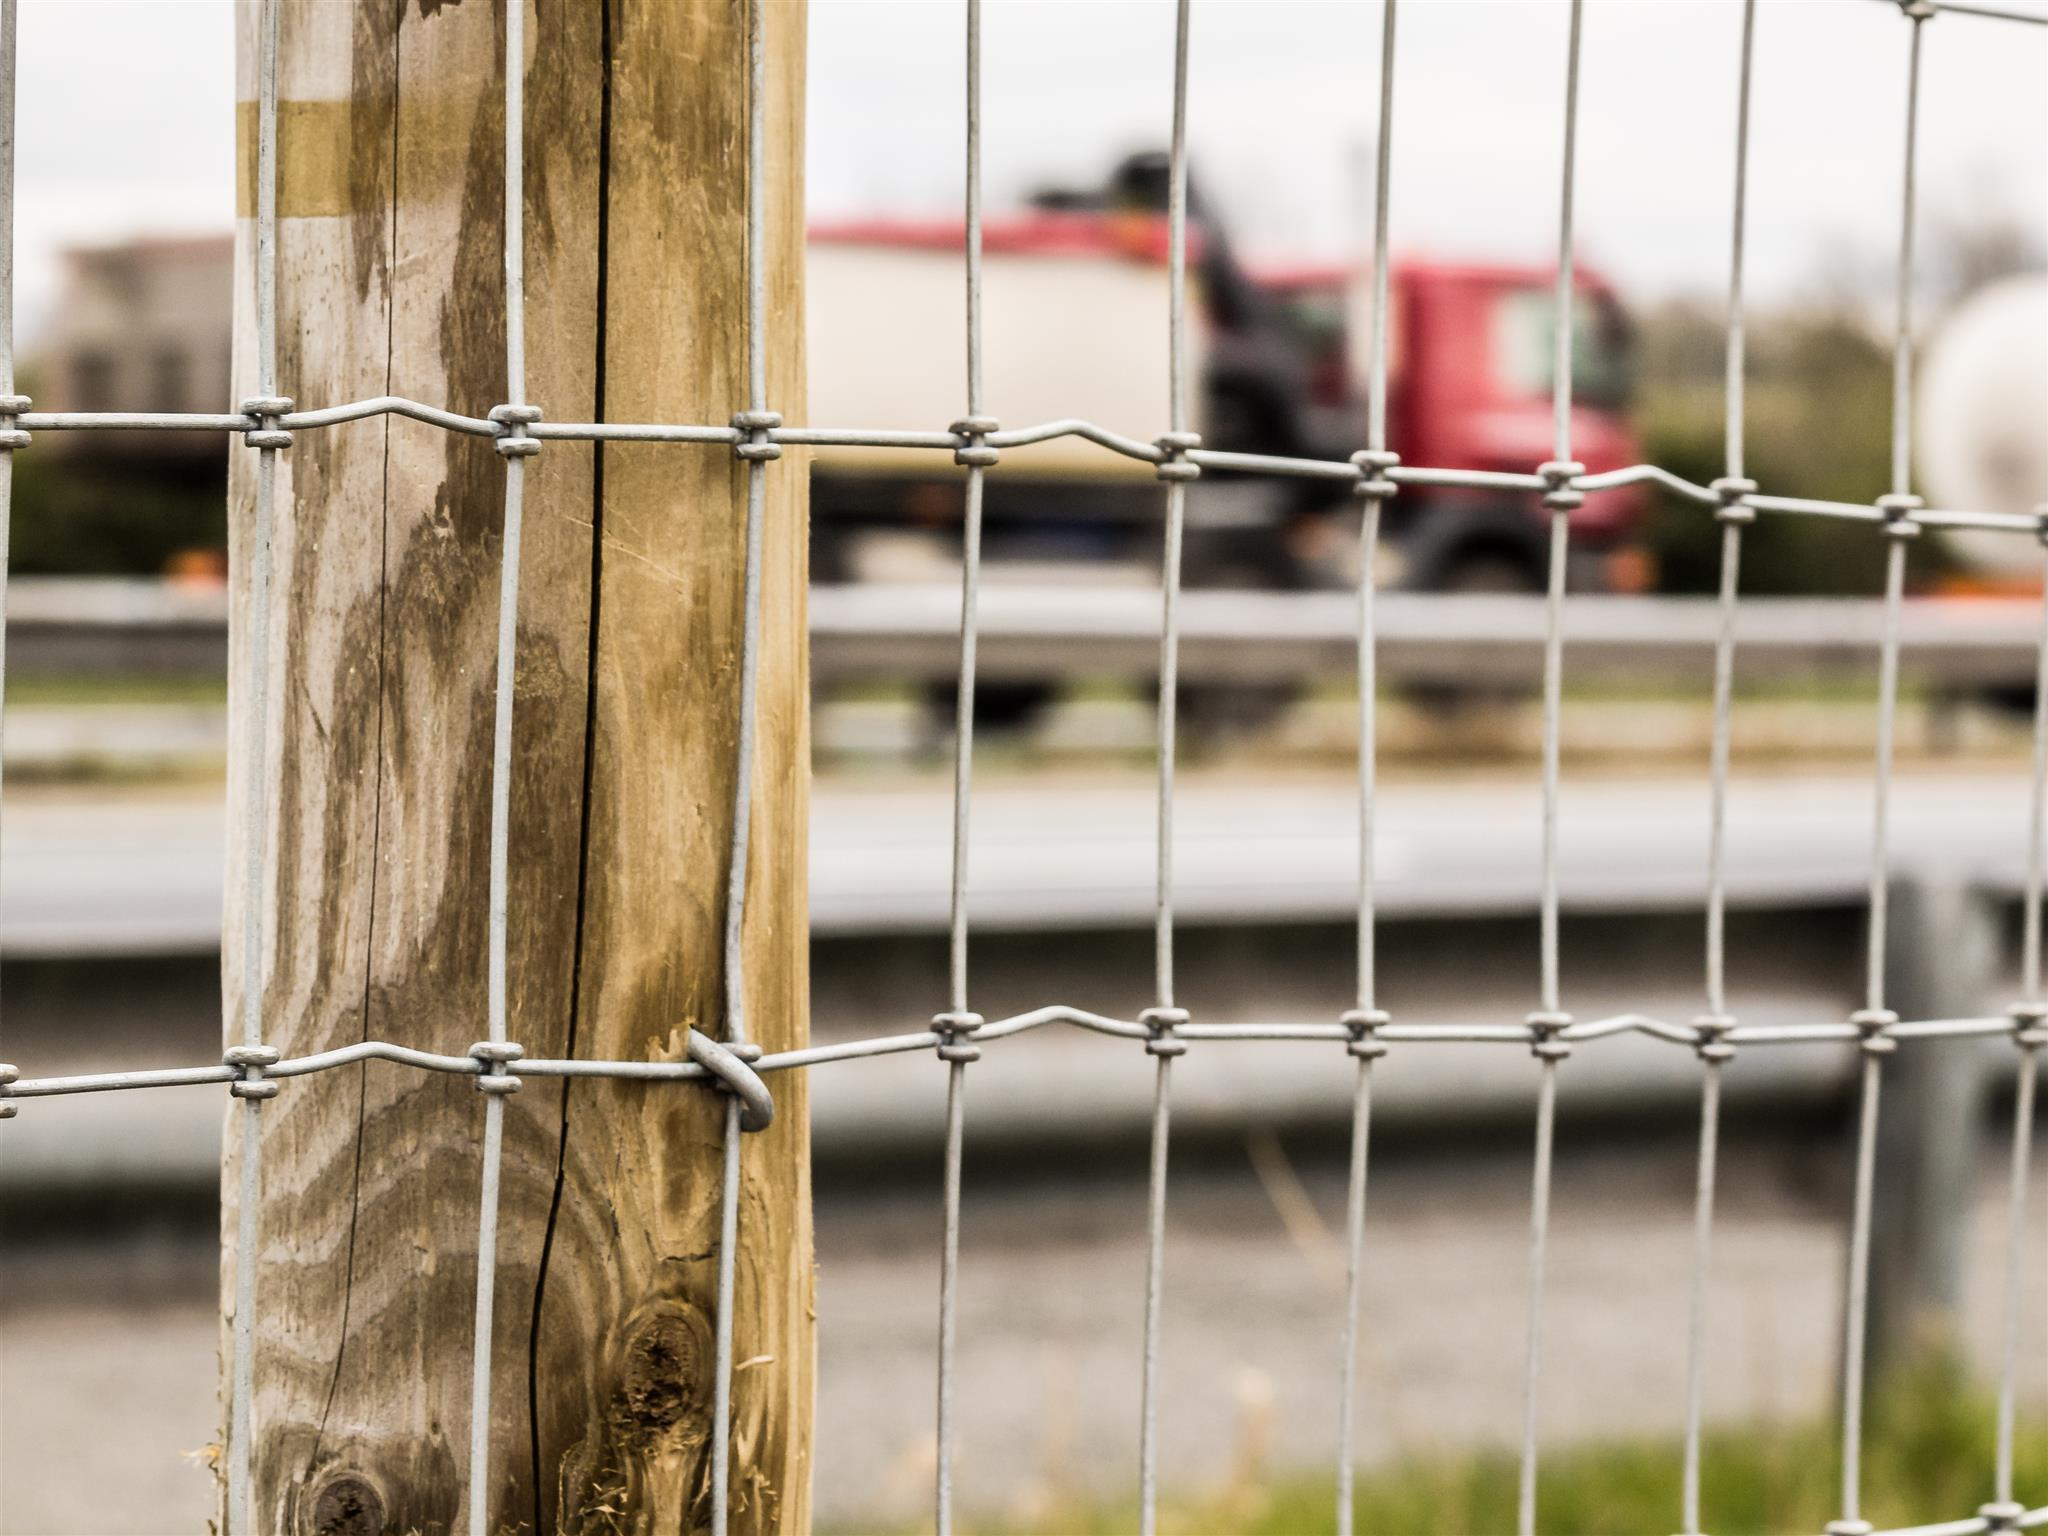 road fencing in front of red lorry